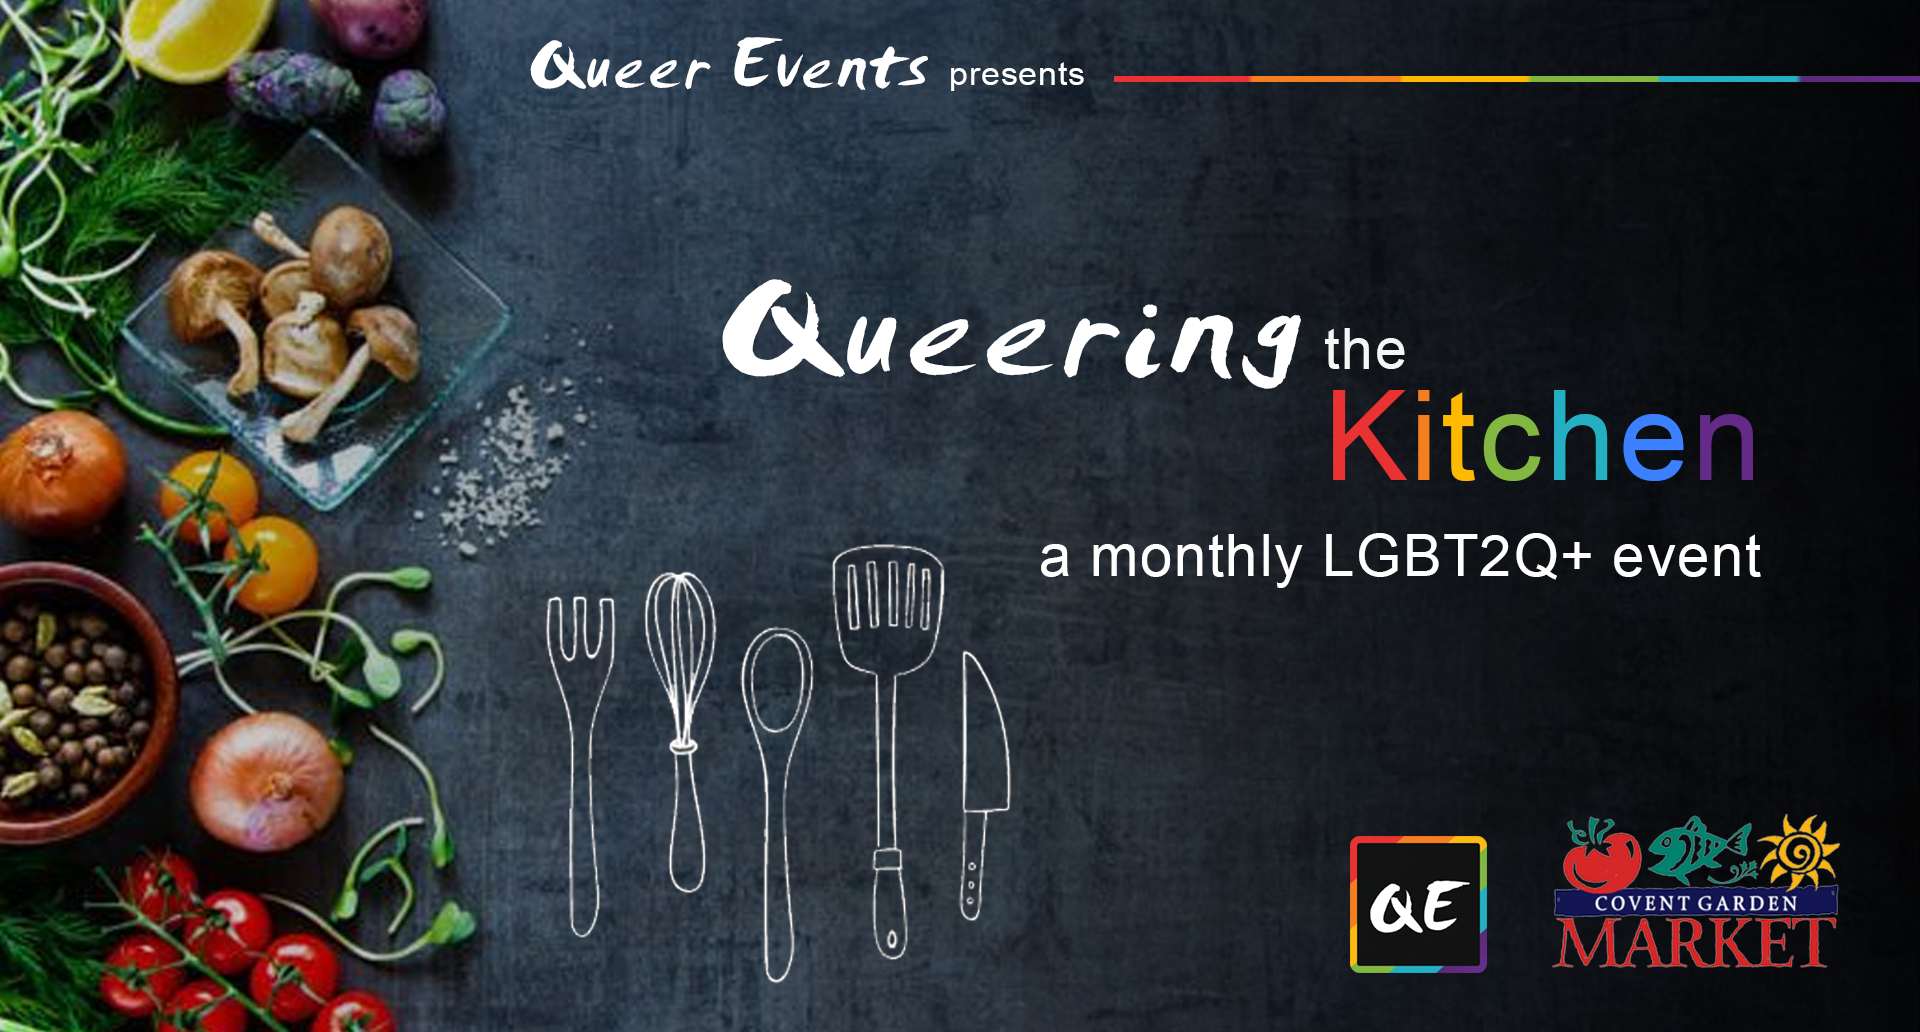 queer events presents monthly queer pub night